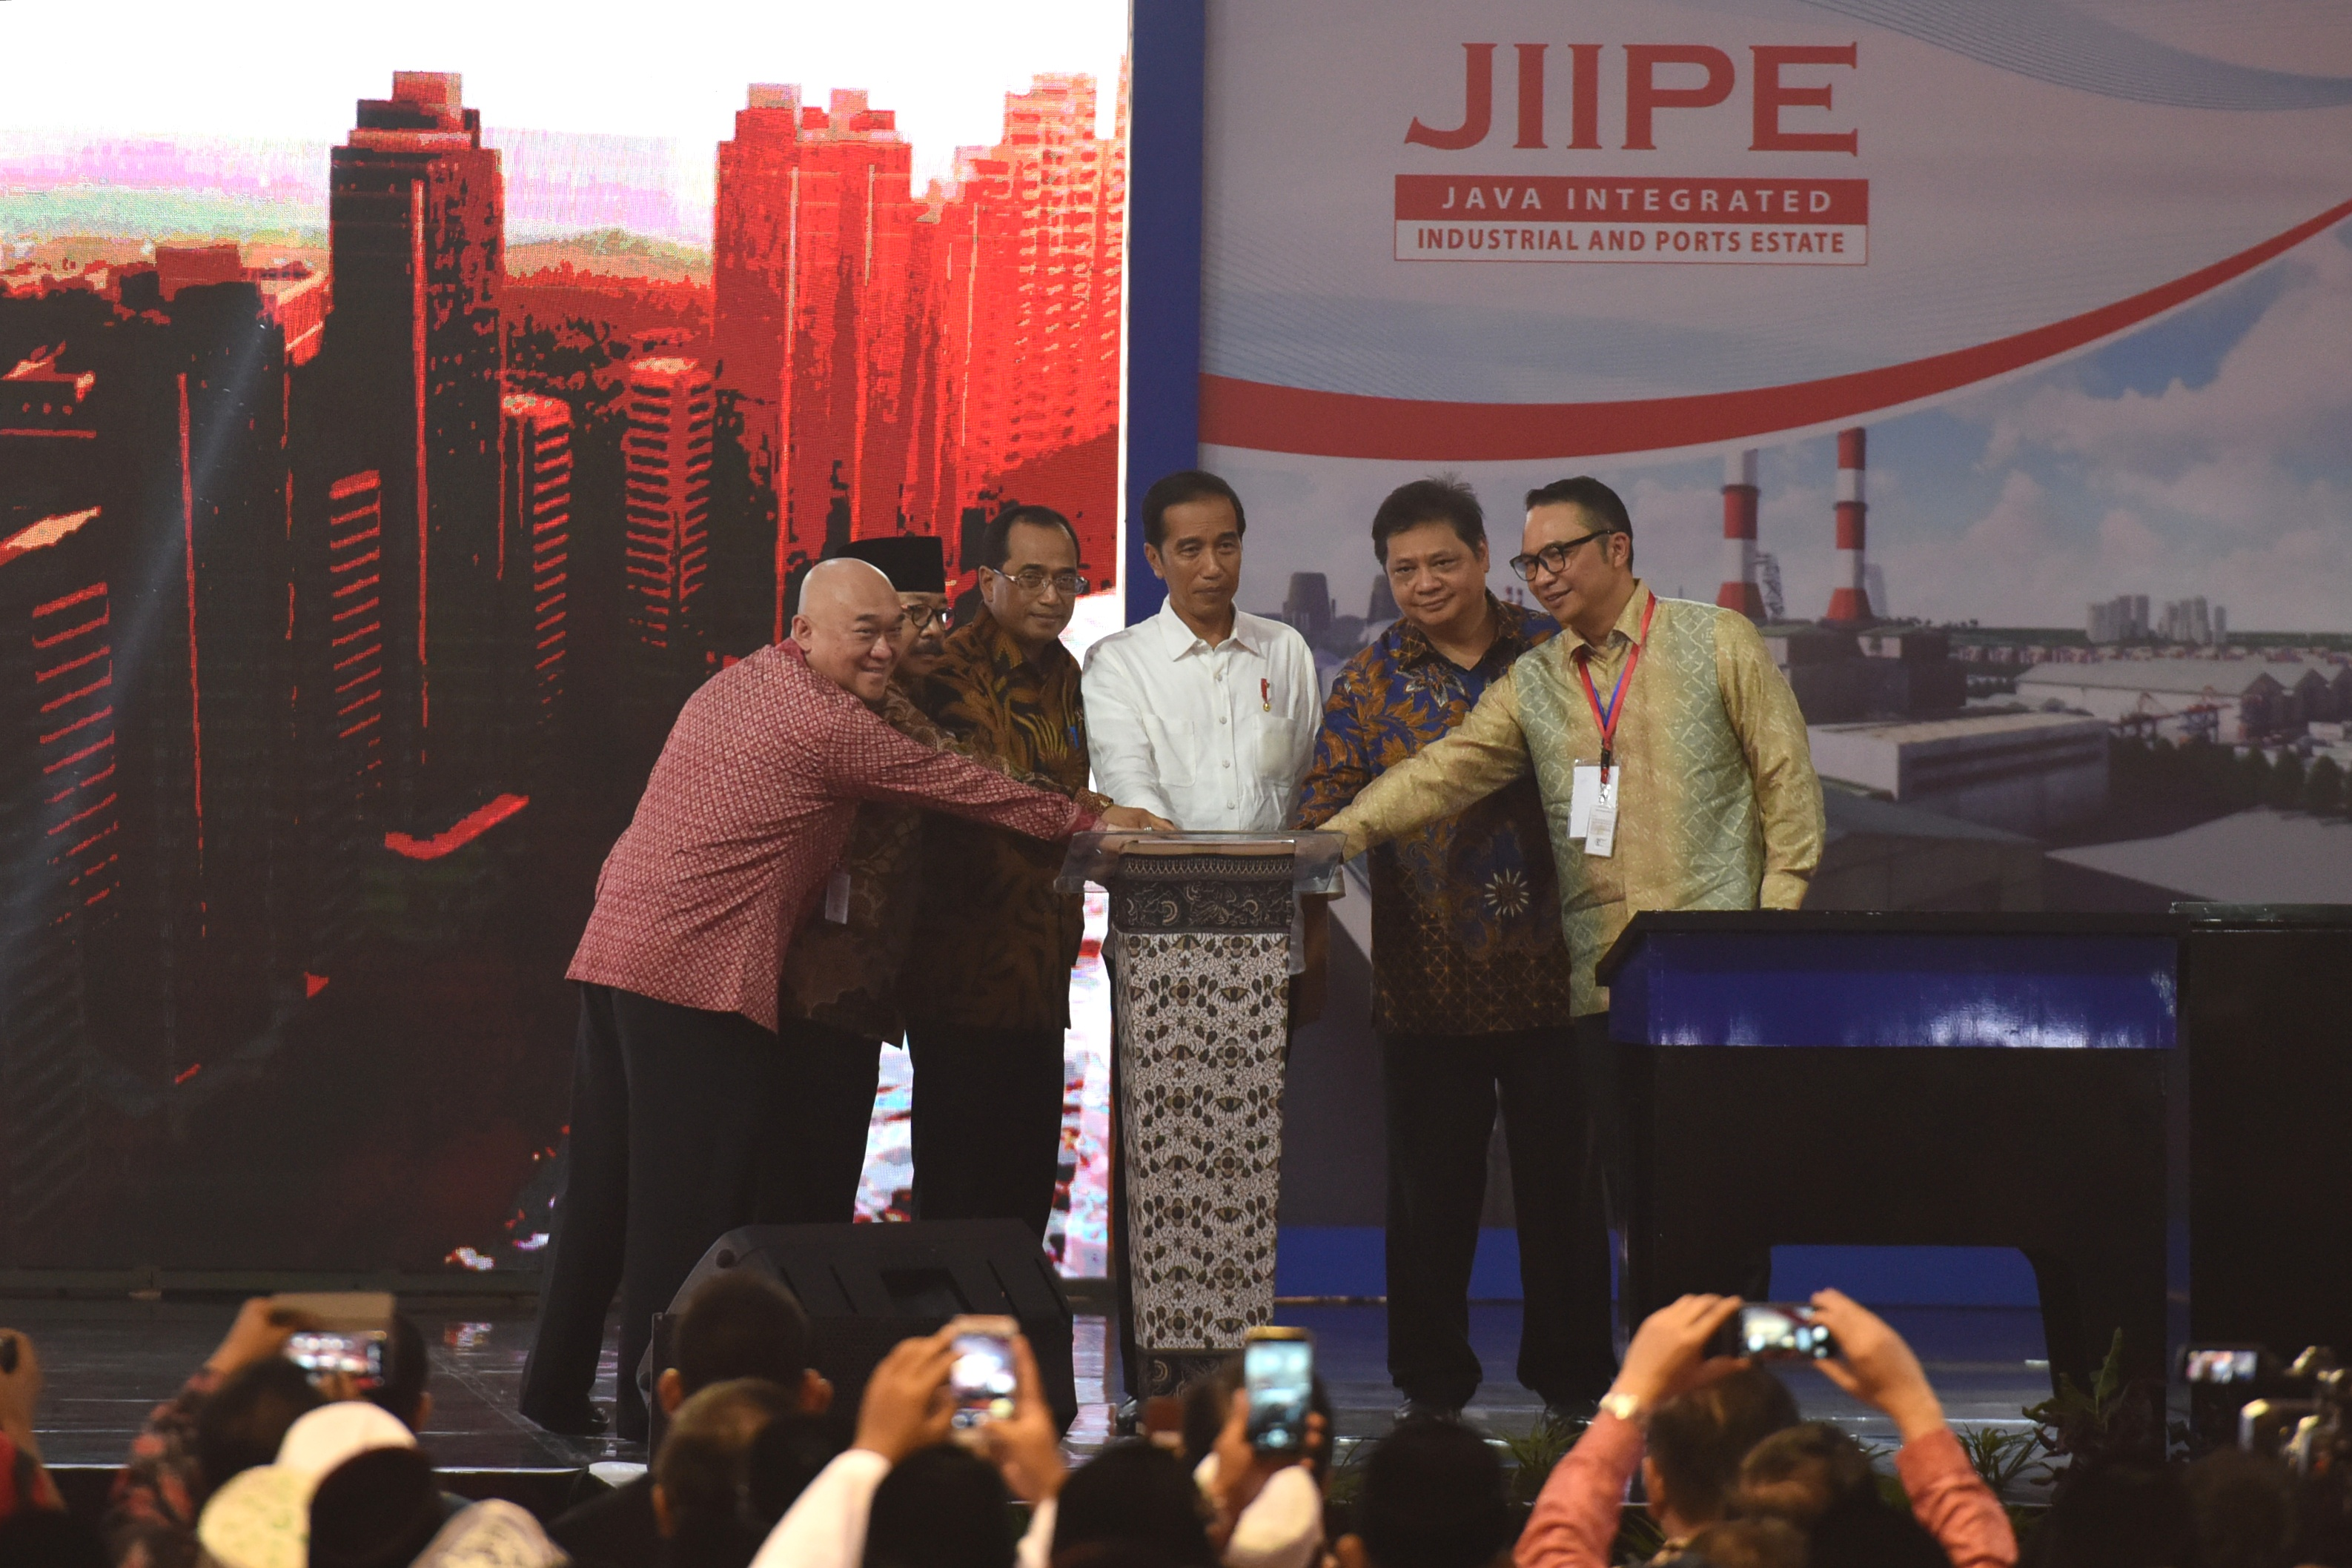 JIIPE Gresik's First Integrated Industrial Area in Indonesia, Officially Opened by Indonesian President Joko Widodo